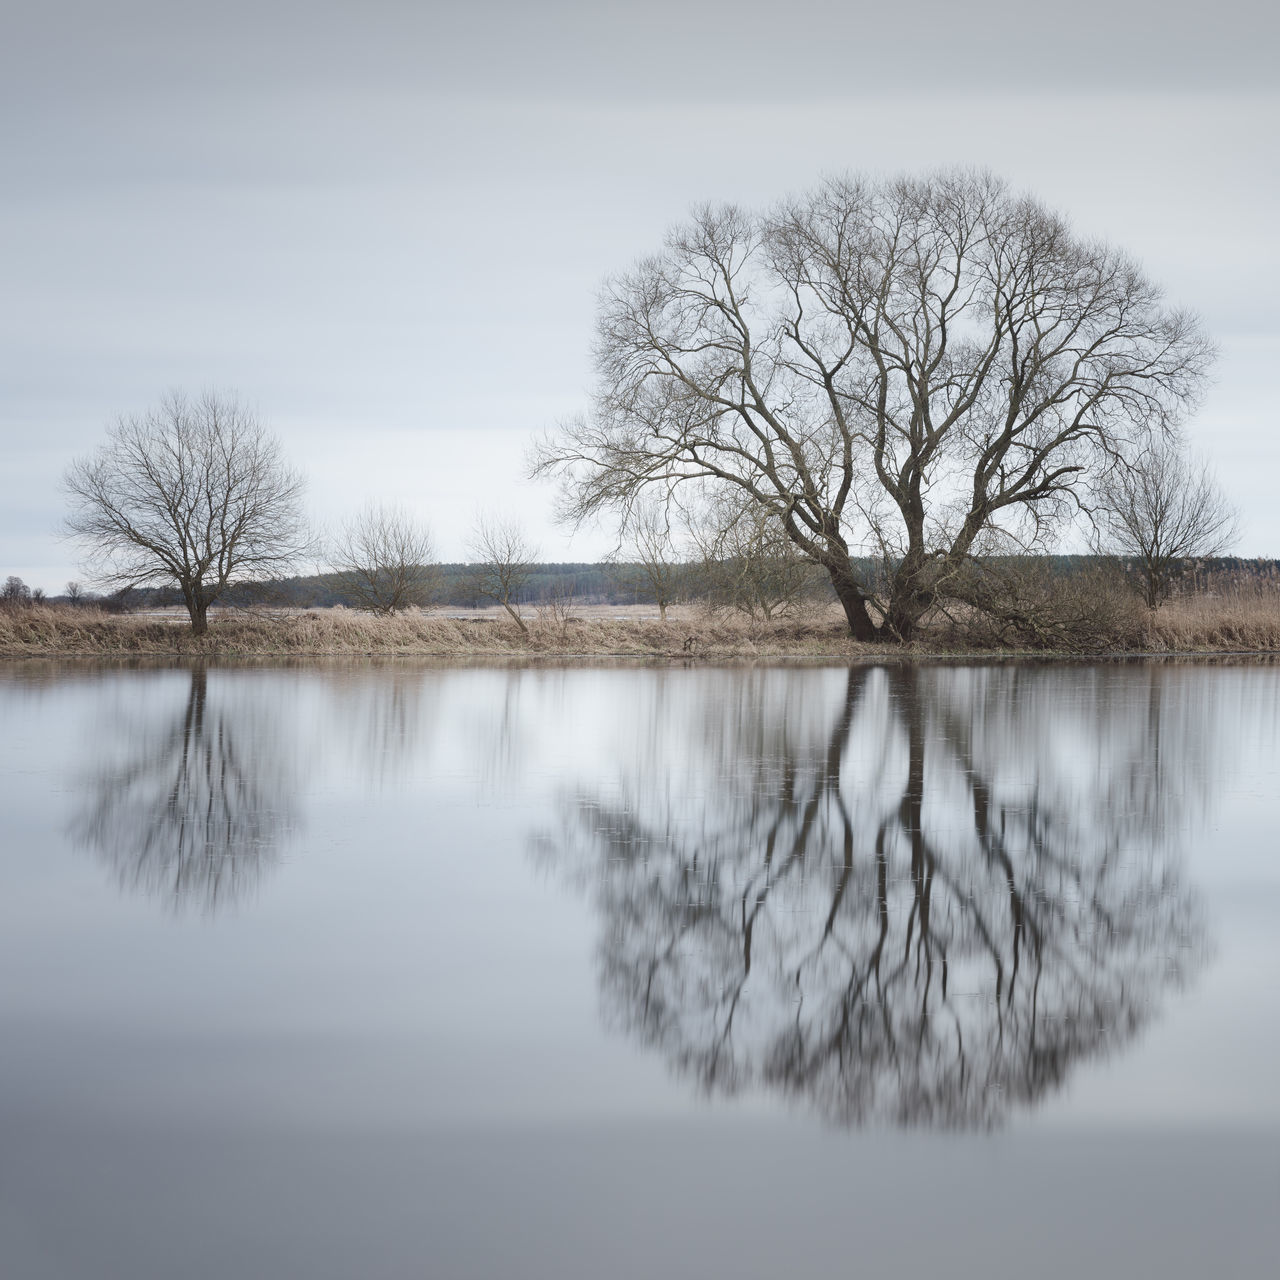 barren tree reflection Bare Tree Barren Landscape Beauty In Nature Branch Brandenburg Cloud - Sky Day Fineart Germany Havelland Lake Lone Long Exposure Muted Colors Nature No People Outdoors Philipp Dase Reflection Scenics Sky Tranquil Scene Tranquility Tree Water